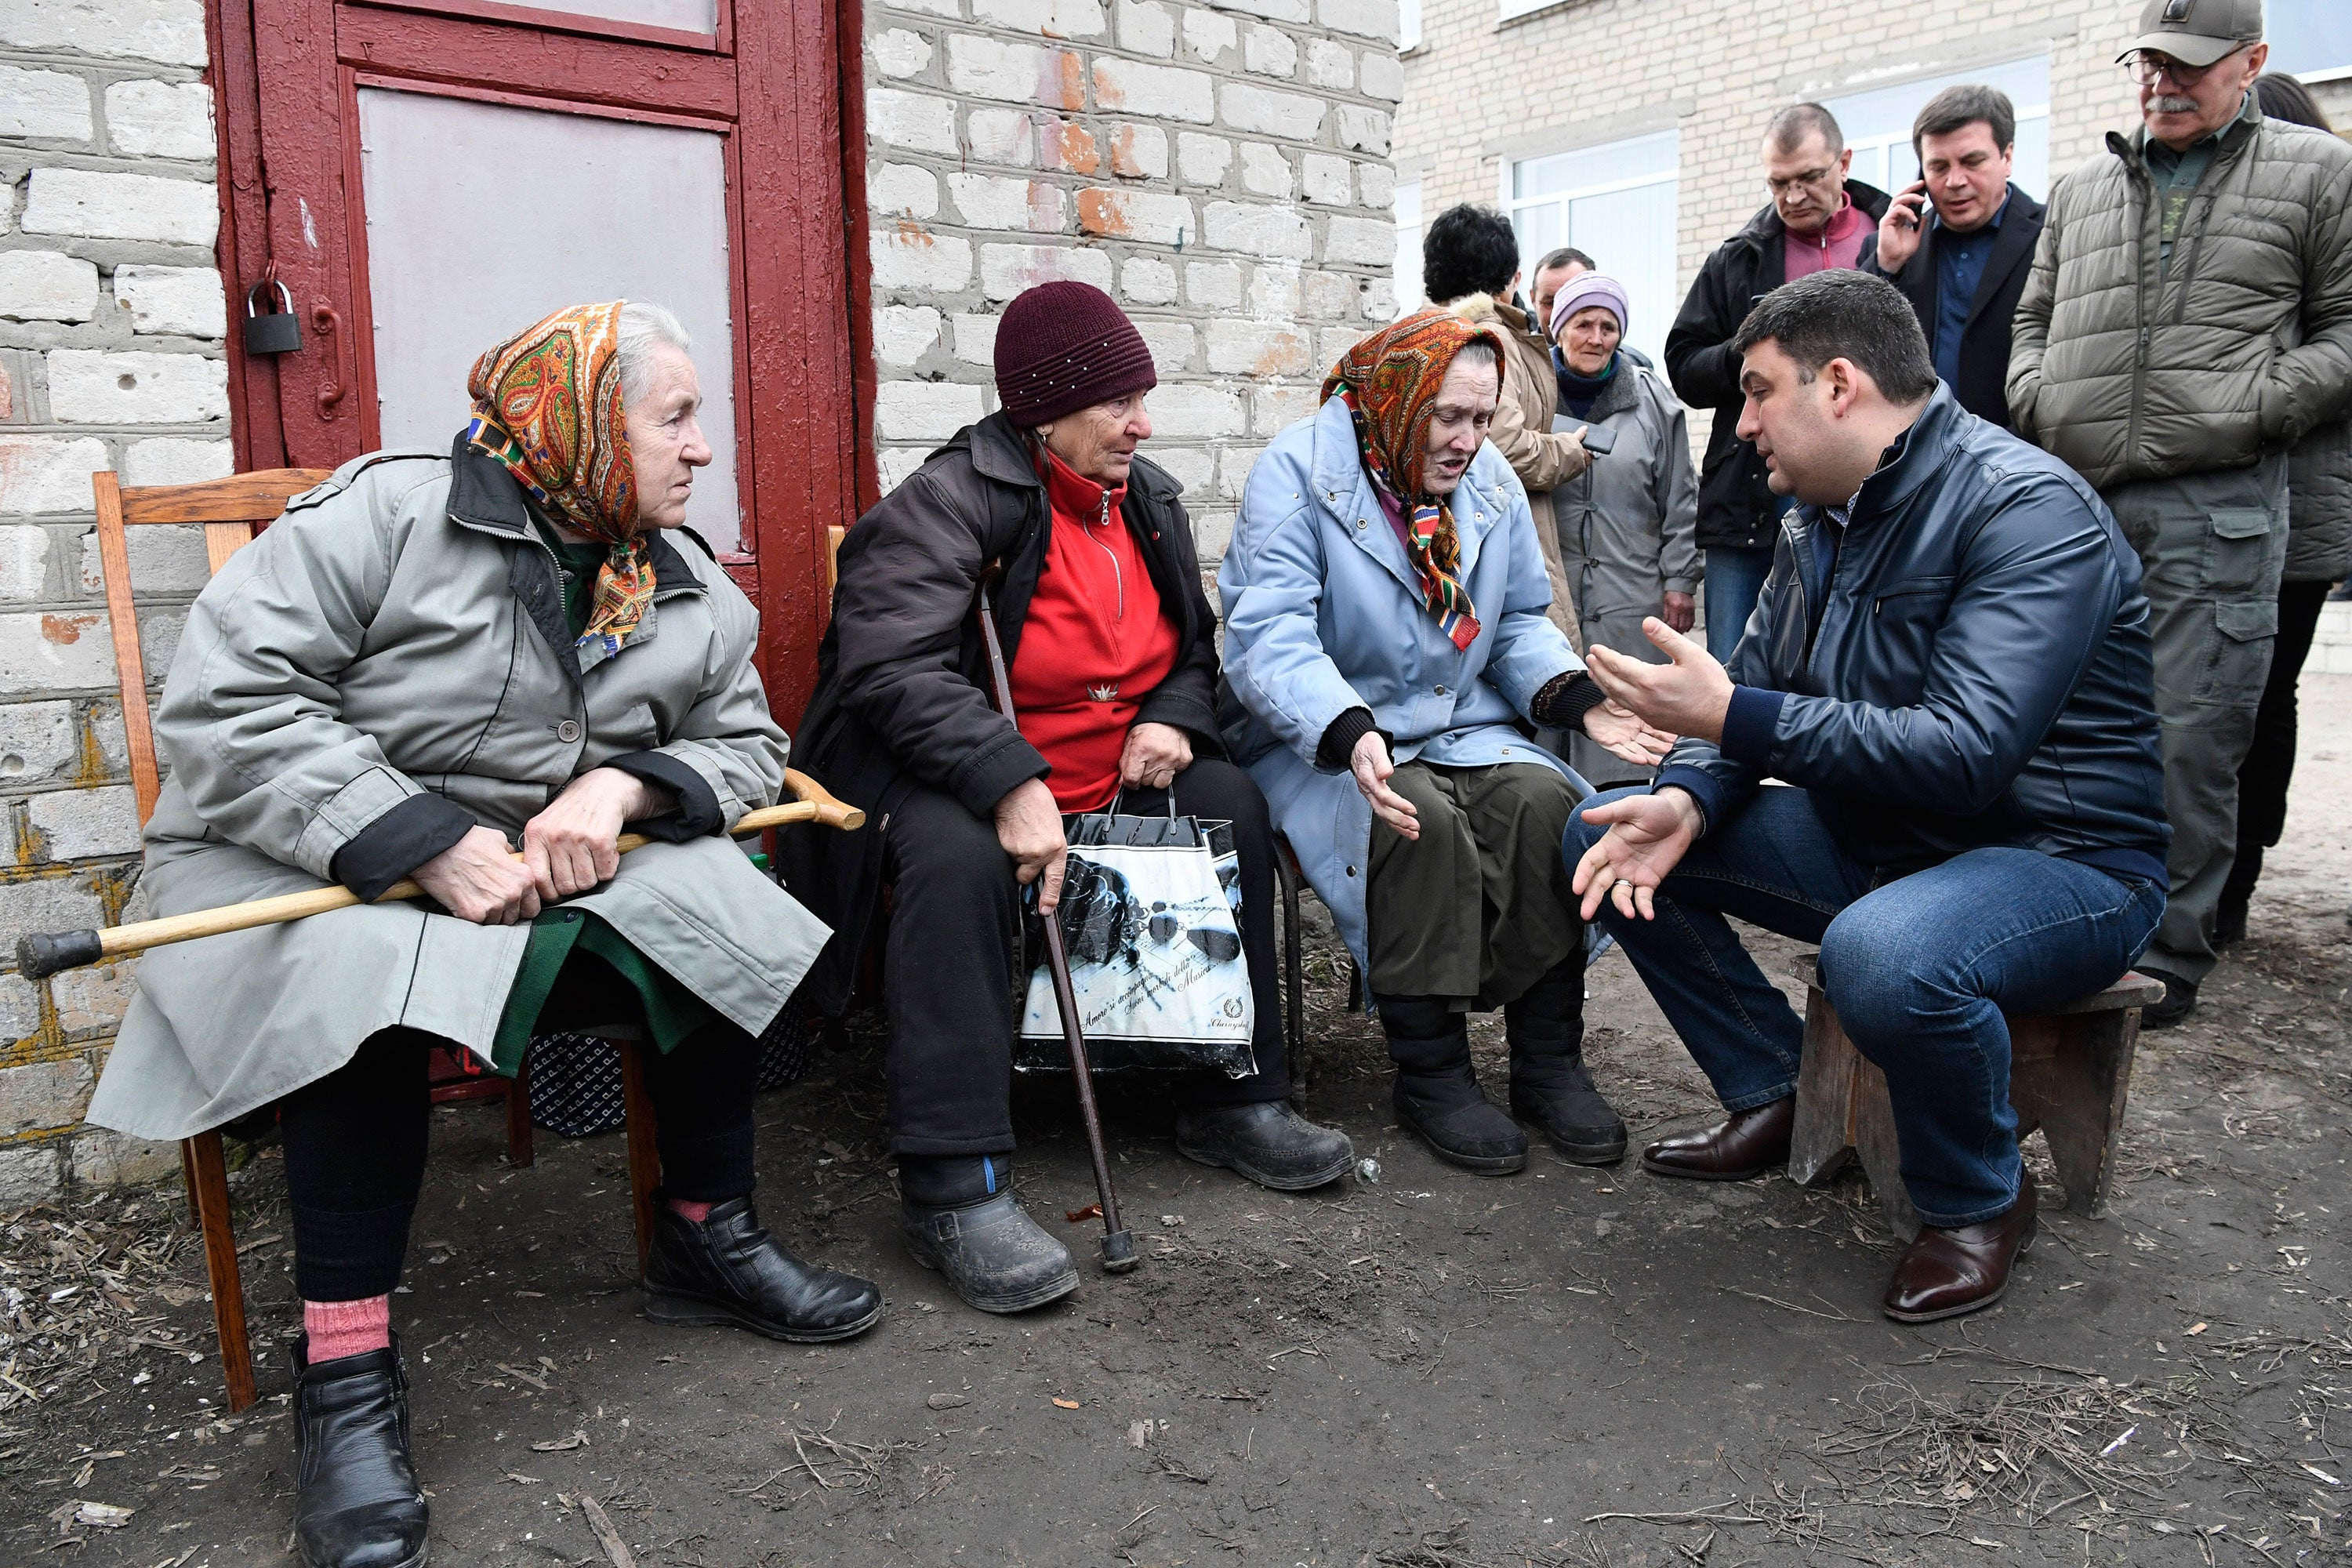 Ukrainian Prime Minister Volodymyr Groysman meets with local residents at a collection point for evacuees after ammunition detonated at a military base in the town of Balaklia, Ukraine, March 23, 2017. (Photo: Pool/Reuters/Newscom)